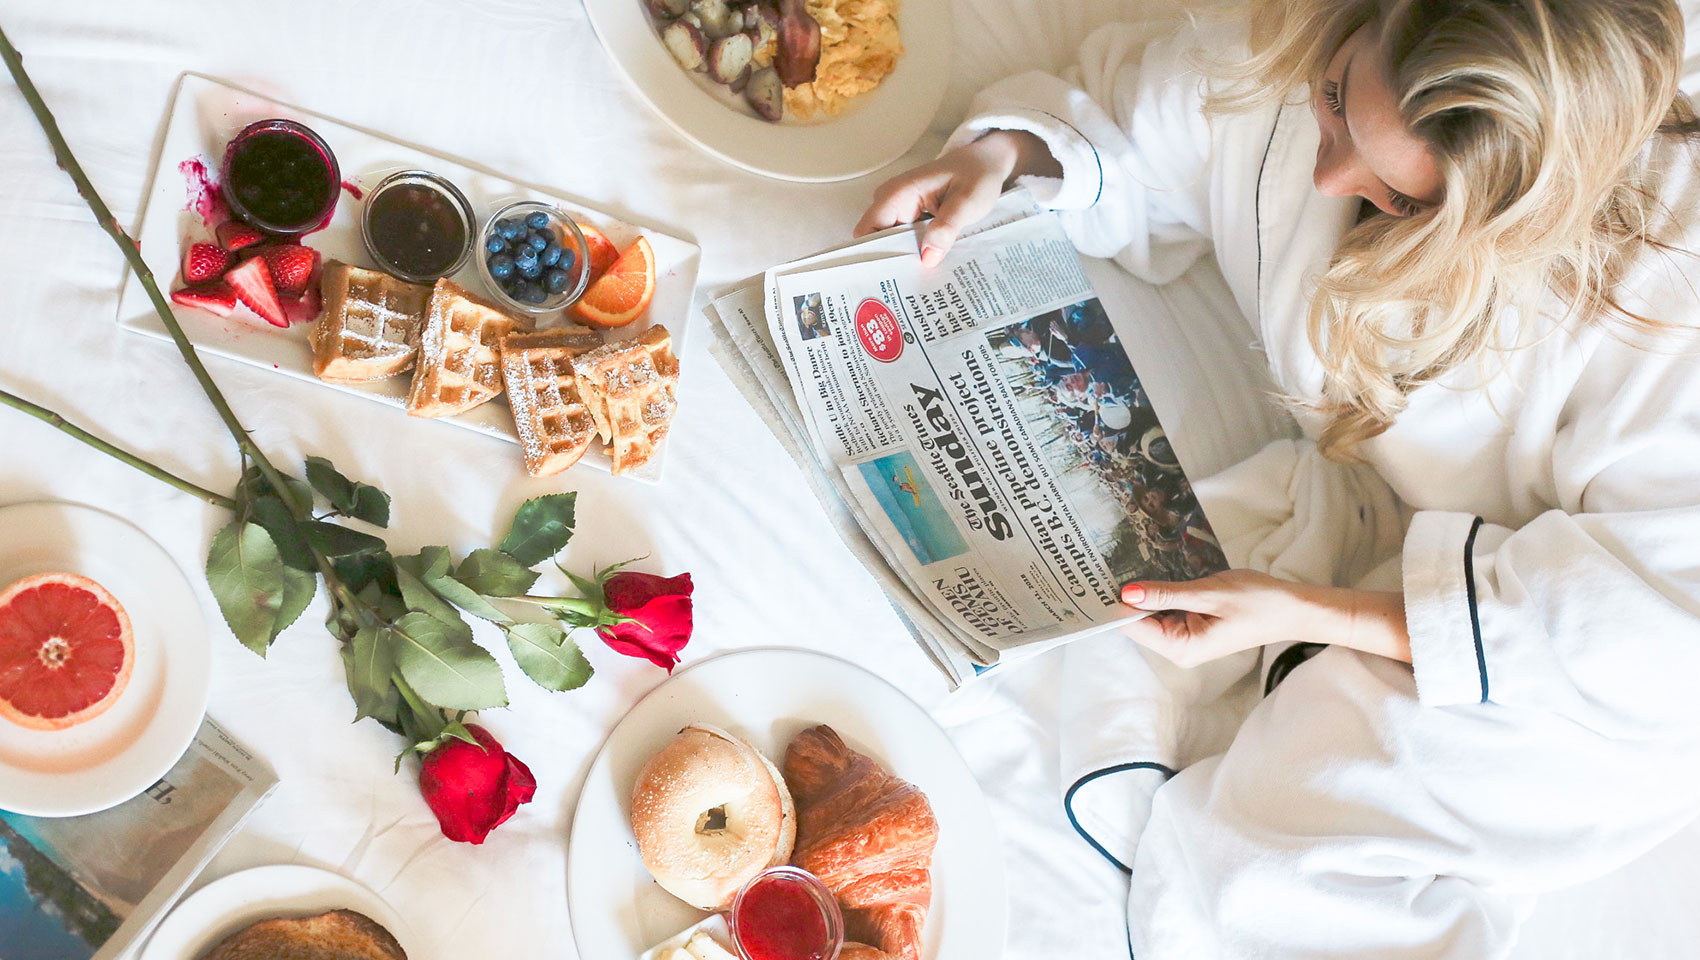 Breakfast spread on bed with roses, newspaper and blonde woman in white robe